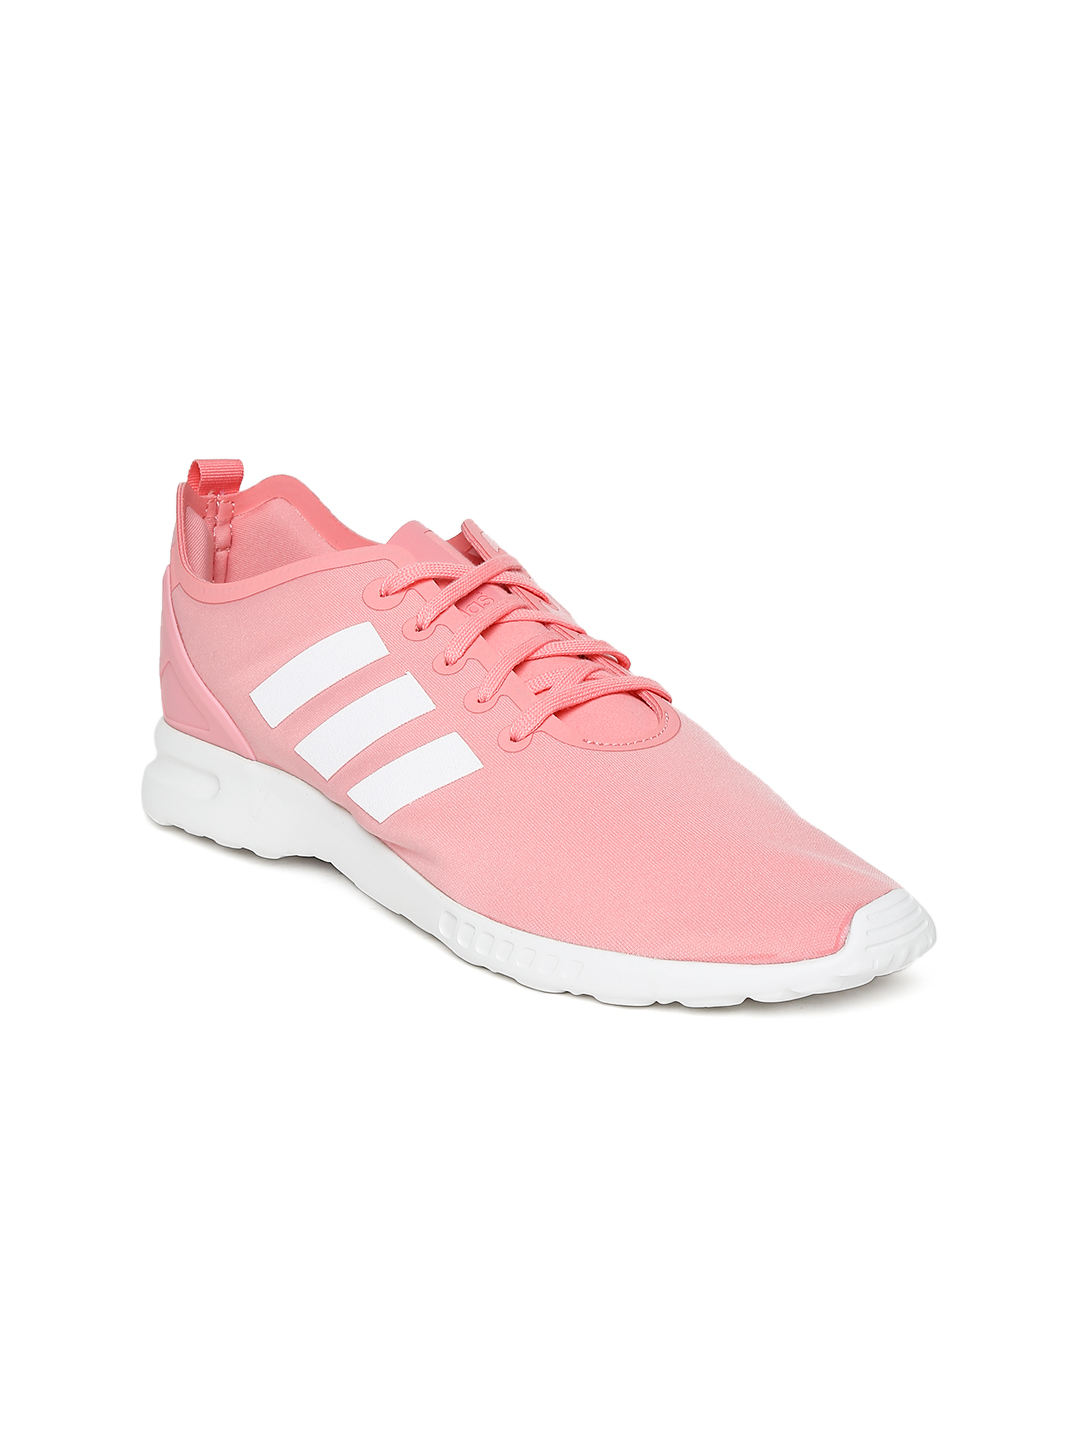 light pink adidas shoes